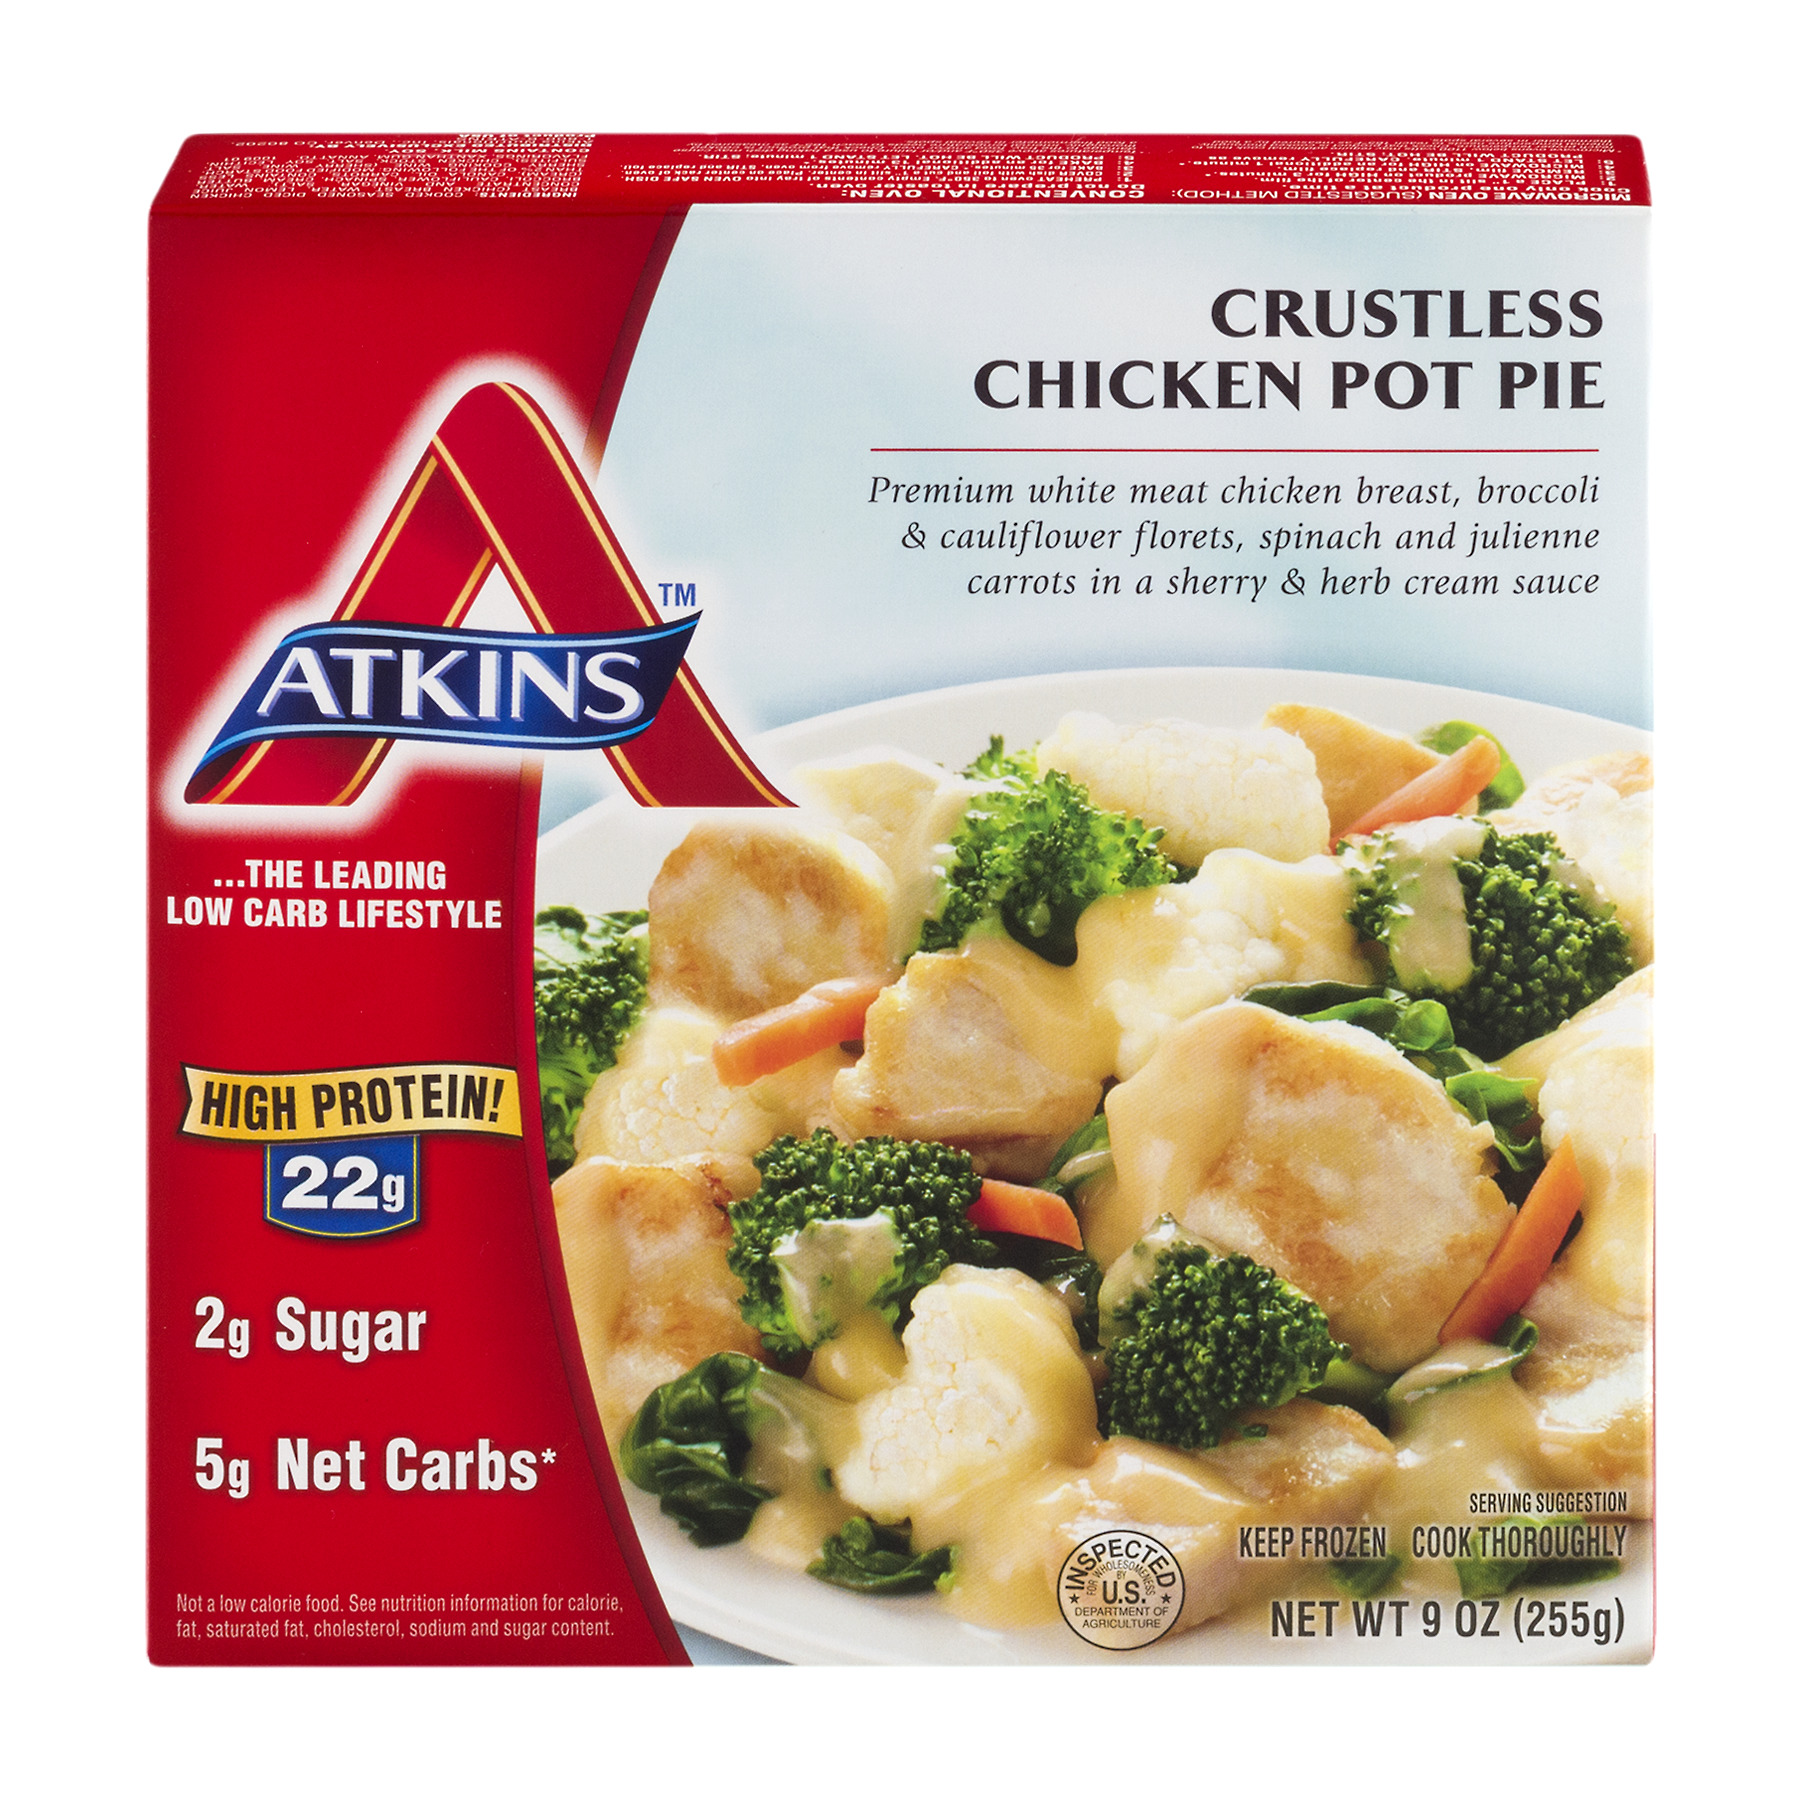 Atkins™ Crustless Chicken Pot Pie 9 oz. Box